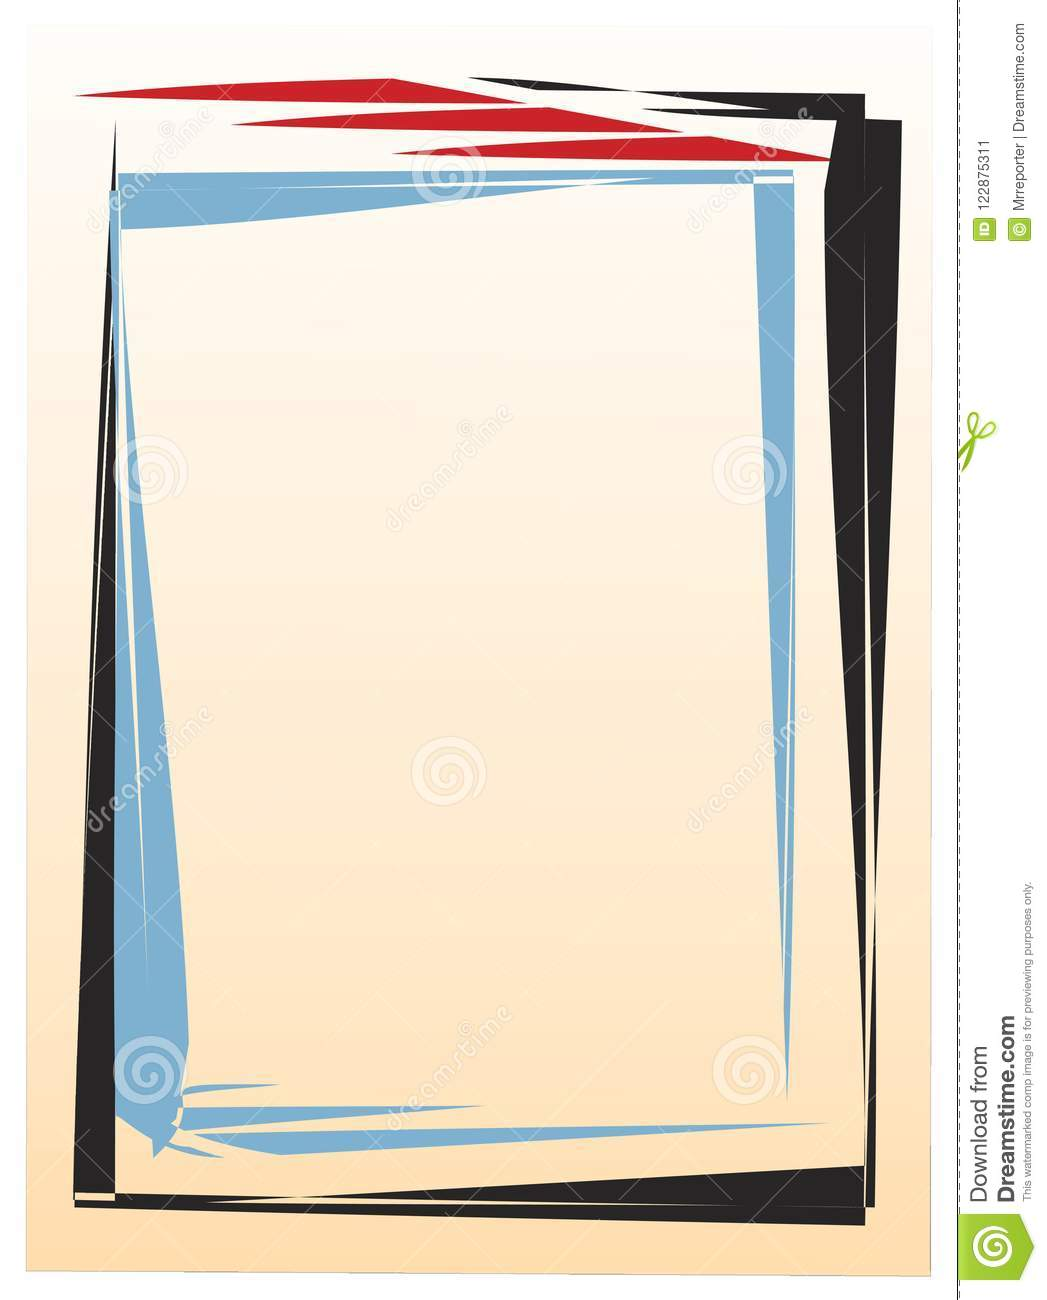 Papyrus stock vector. Illustration of frame, vector - 122875311